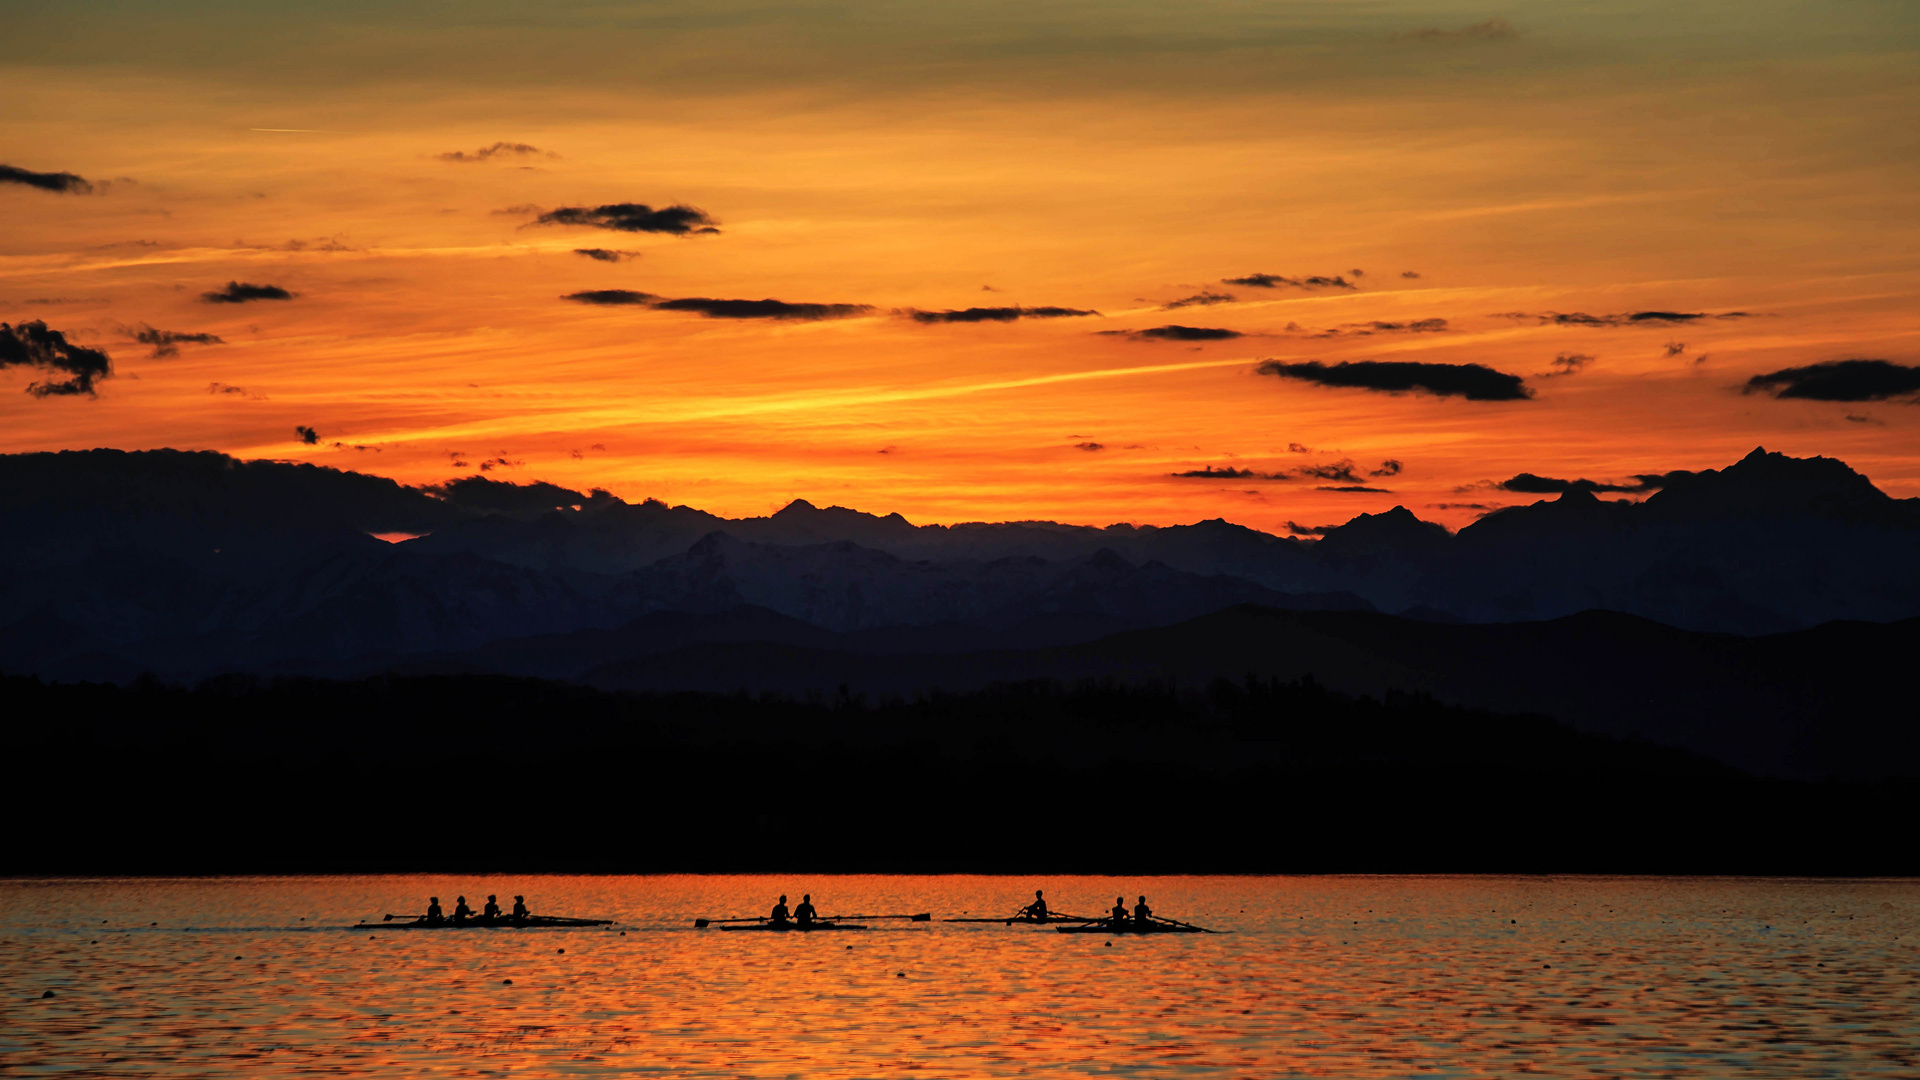 Rowing in the sunset ...